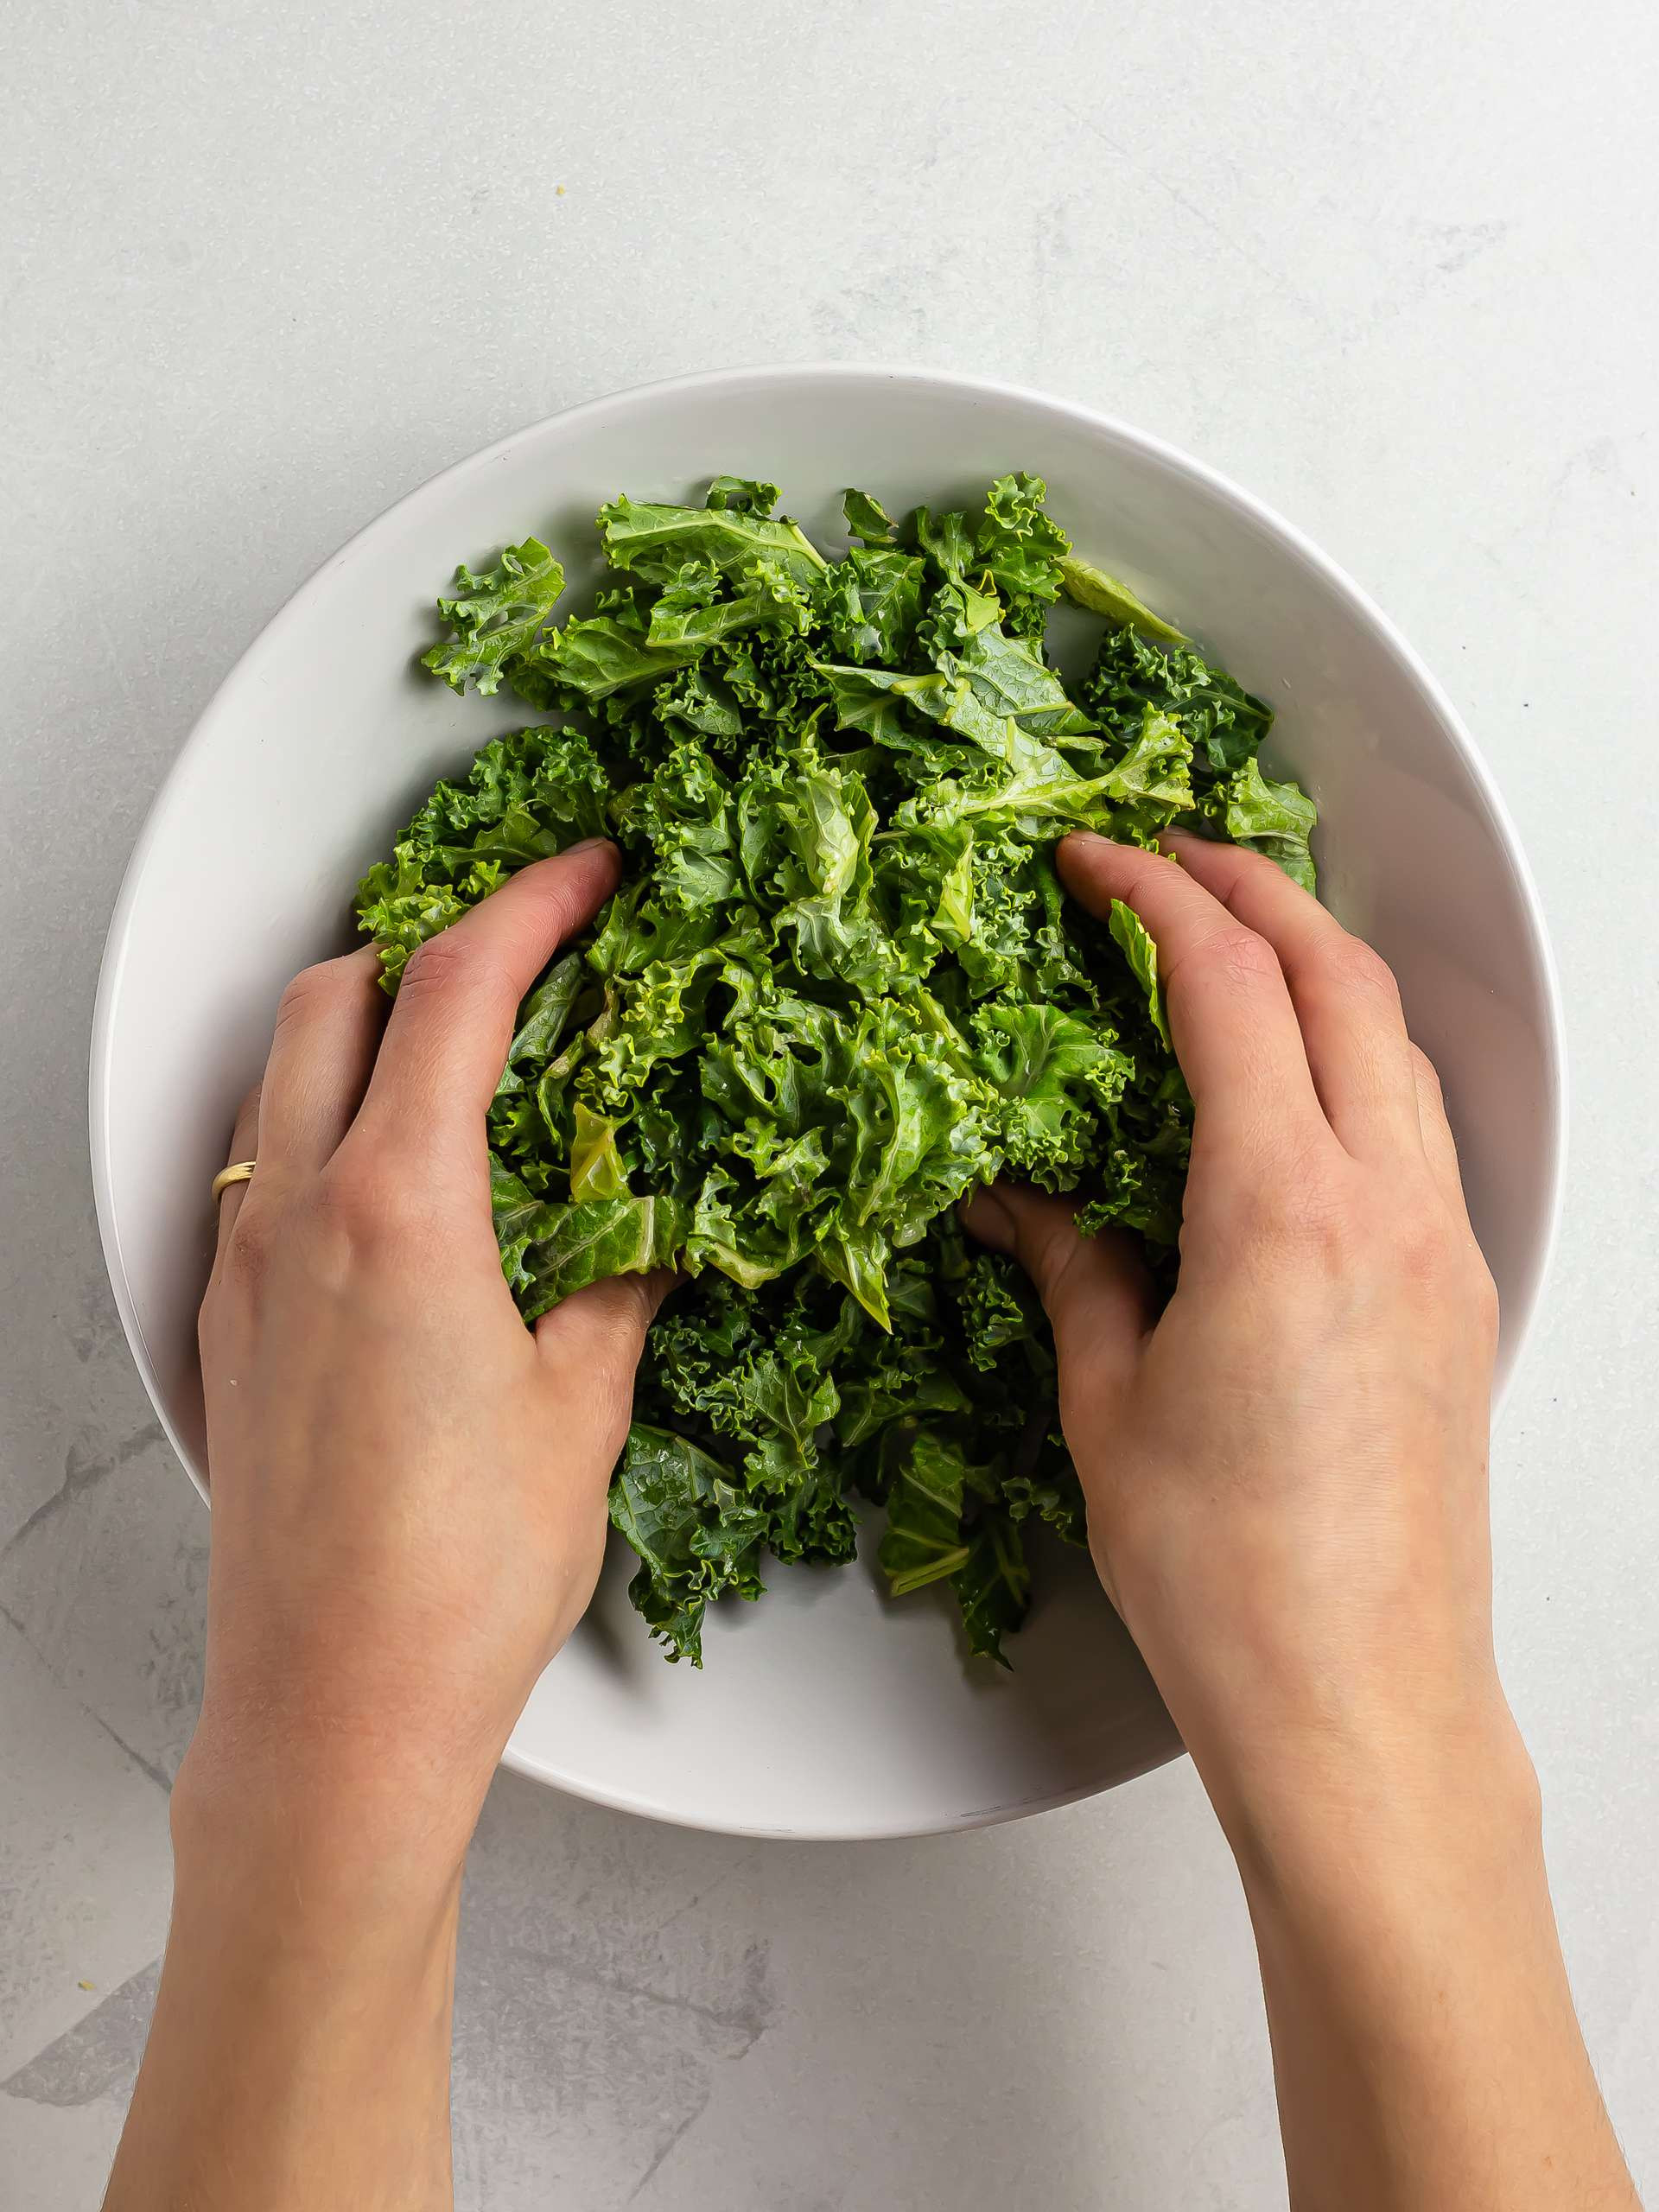 how to soften the kale by hand